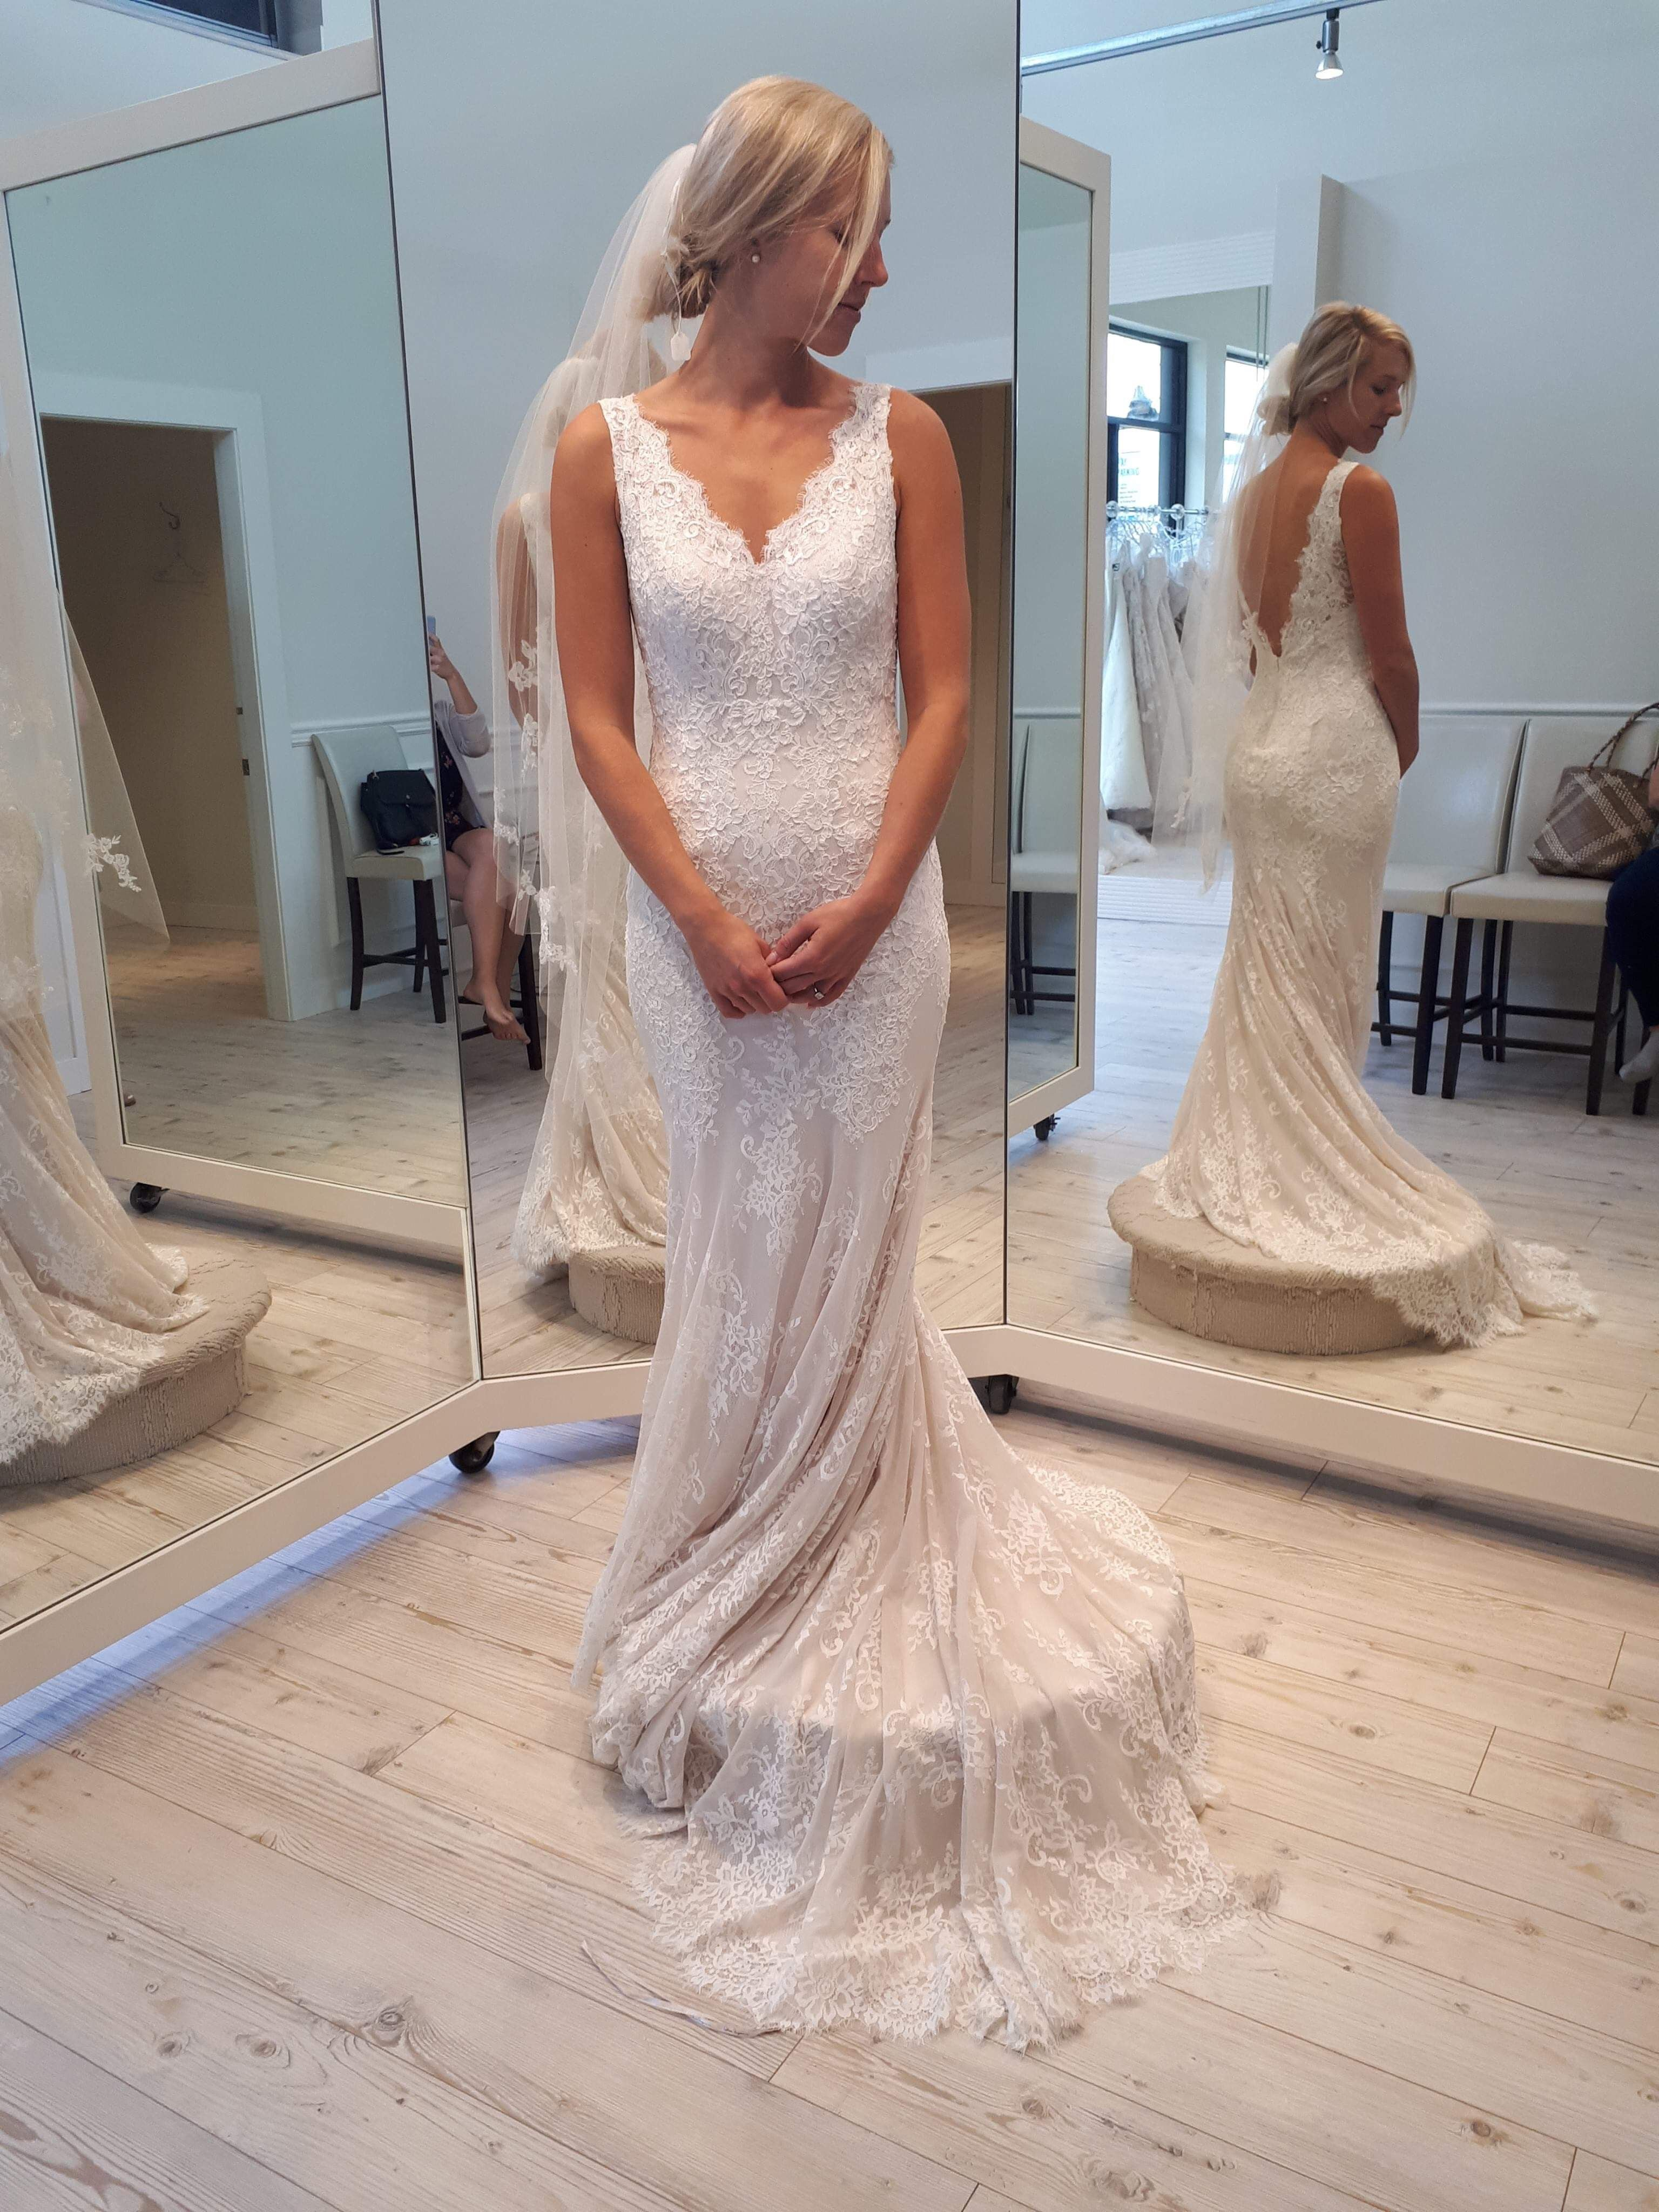 Pin by Tina Kuhn on Ullyot Wedding  Updated in